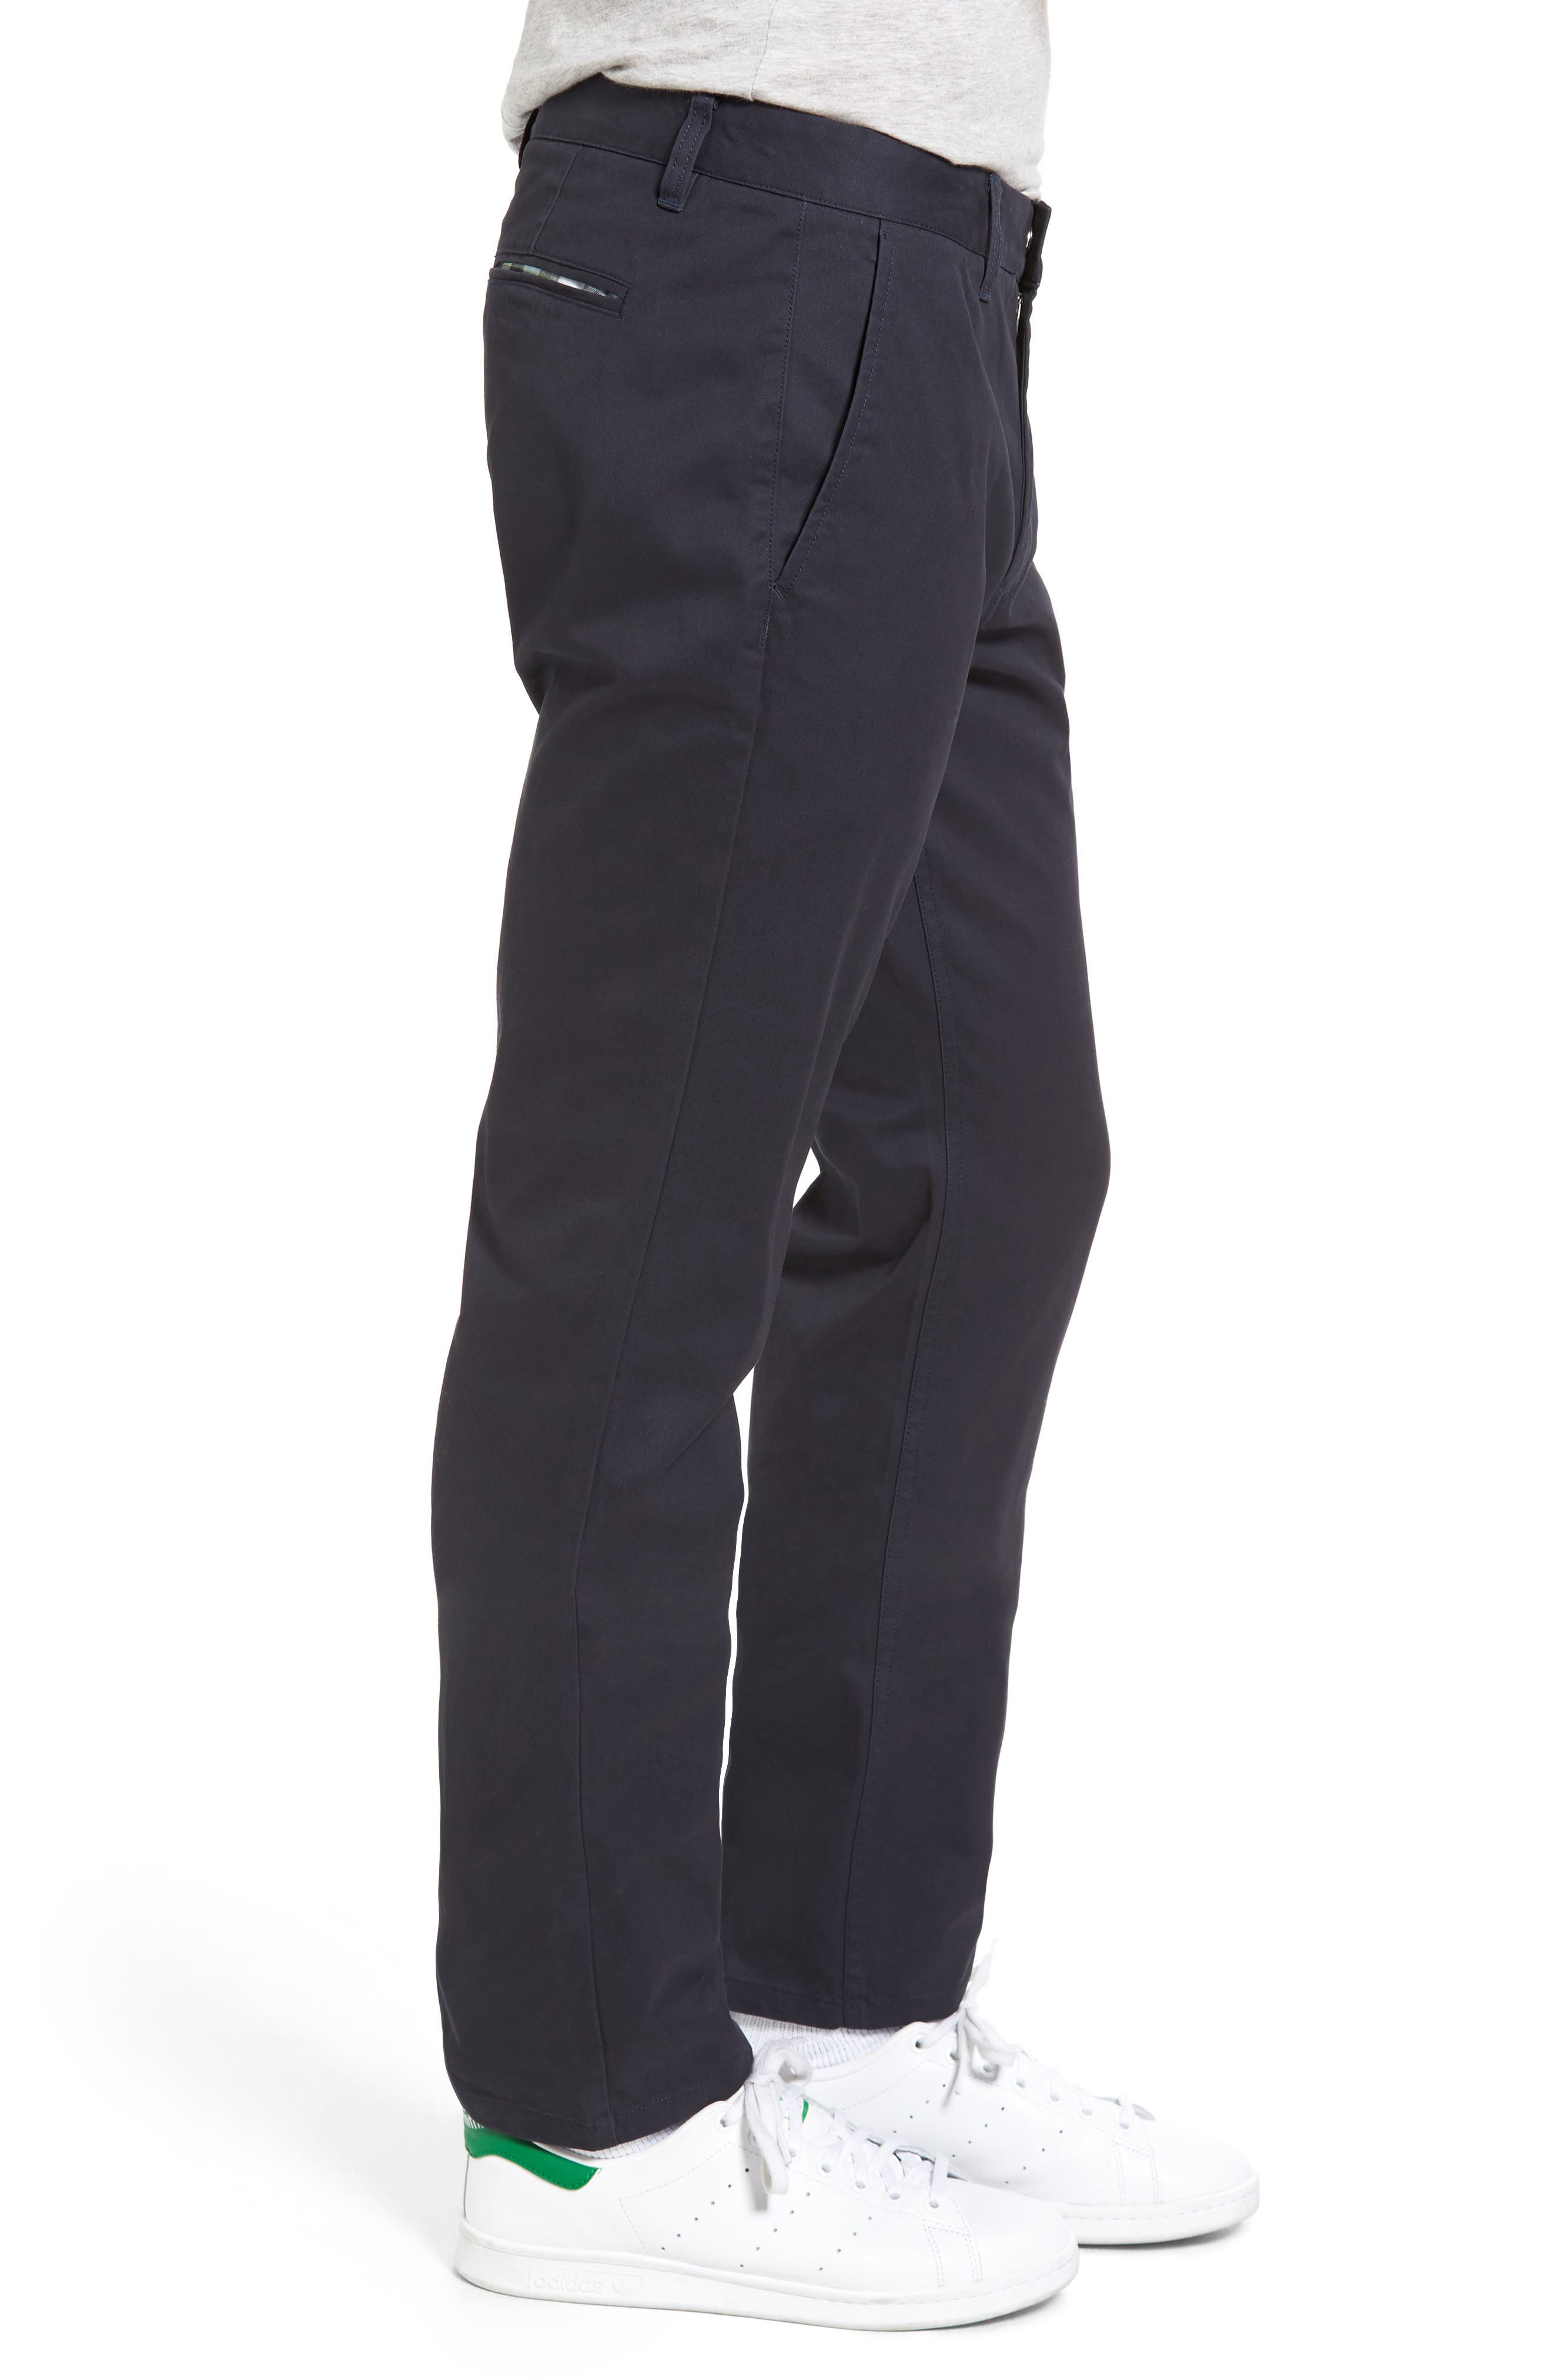 BONOBOS, Straight Fit Washed Chinos, Alternate thumbnail 4, color, JET BLUE